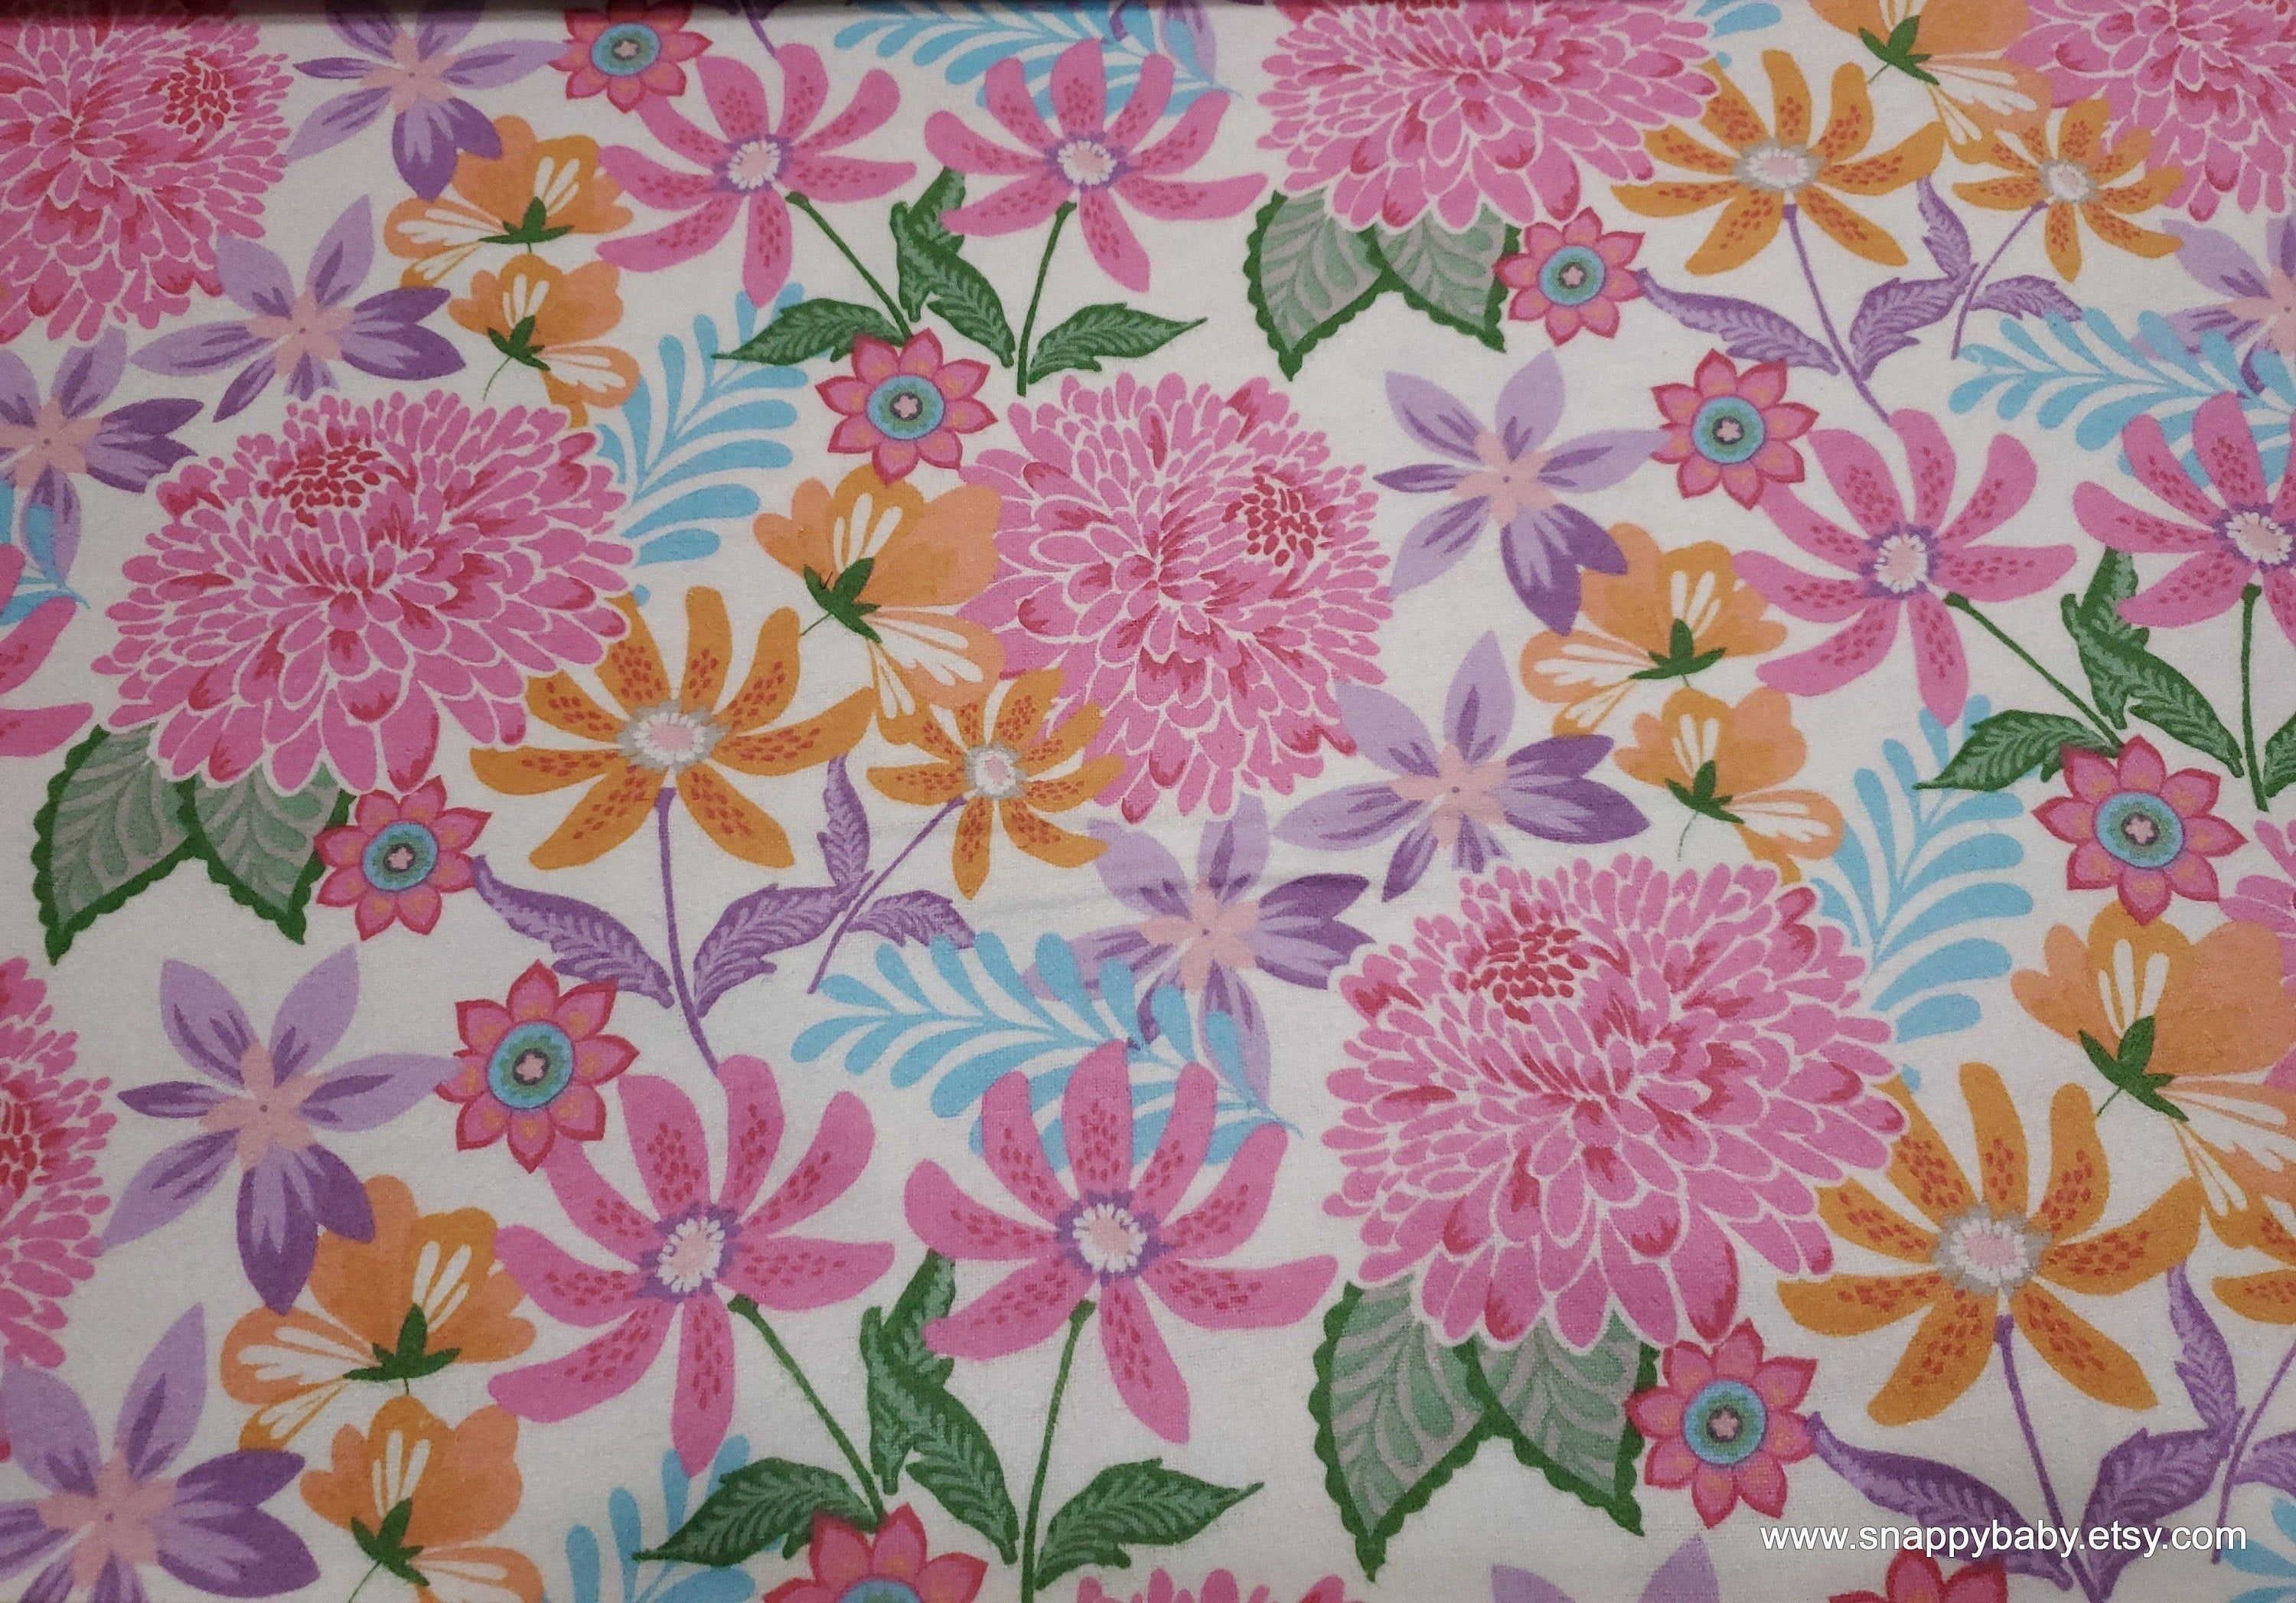 Flannel Fabric Full Bloom Floral By The Yard 100 Cotton Flannel Fabric Floral Flannel